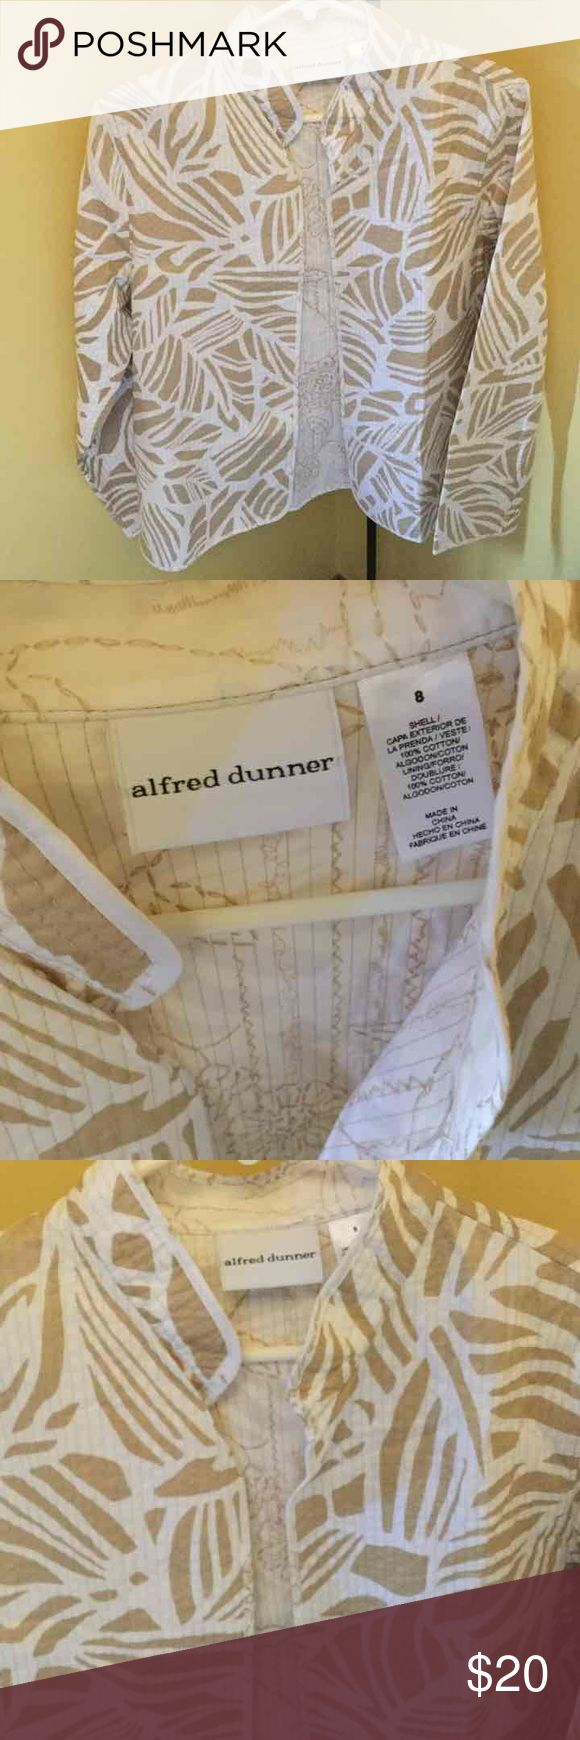 """Women's 8 White Tan Blazer Alfred Dunner Women's 8 White Tan Blazer Alfred Dunner  Cute as can be! """"Freshly laundered.""""                              ♡GOD BLESS♡                    ☆BUNDLE AND SAVE 5%☆              ♡ASK I WILL REPLY PROMPTLY♡       ☆SHARE & FOLLOW I WILL DO THE SAME☆    ☆REASONABLE OFFER'S ALWAYS WELCOMED☆ Alferd Dunner Tops Blouses"""